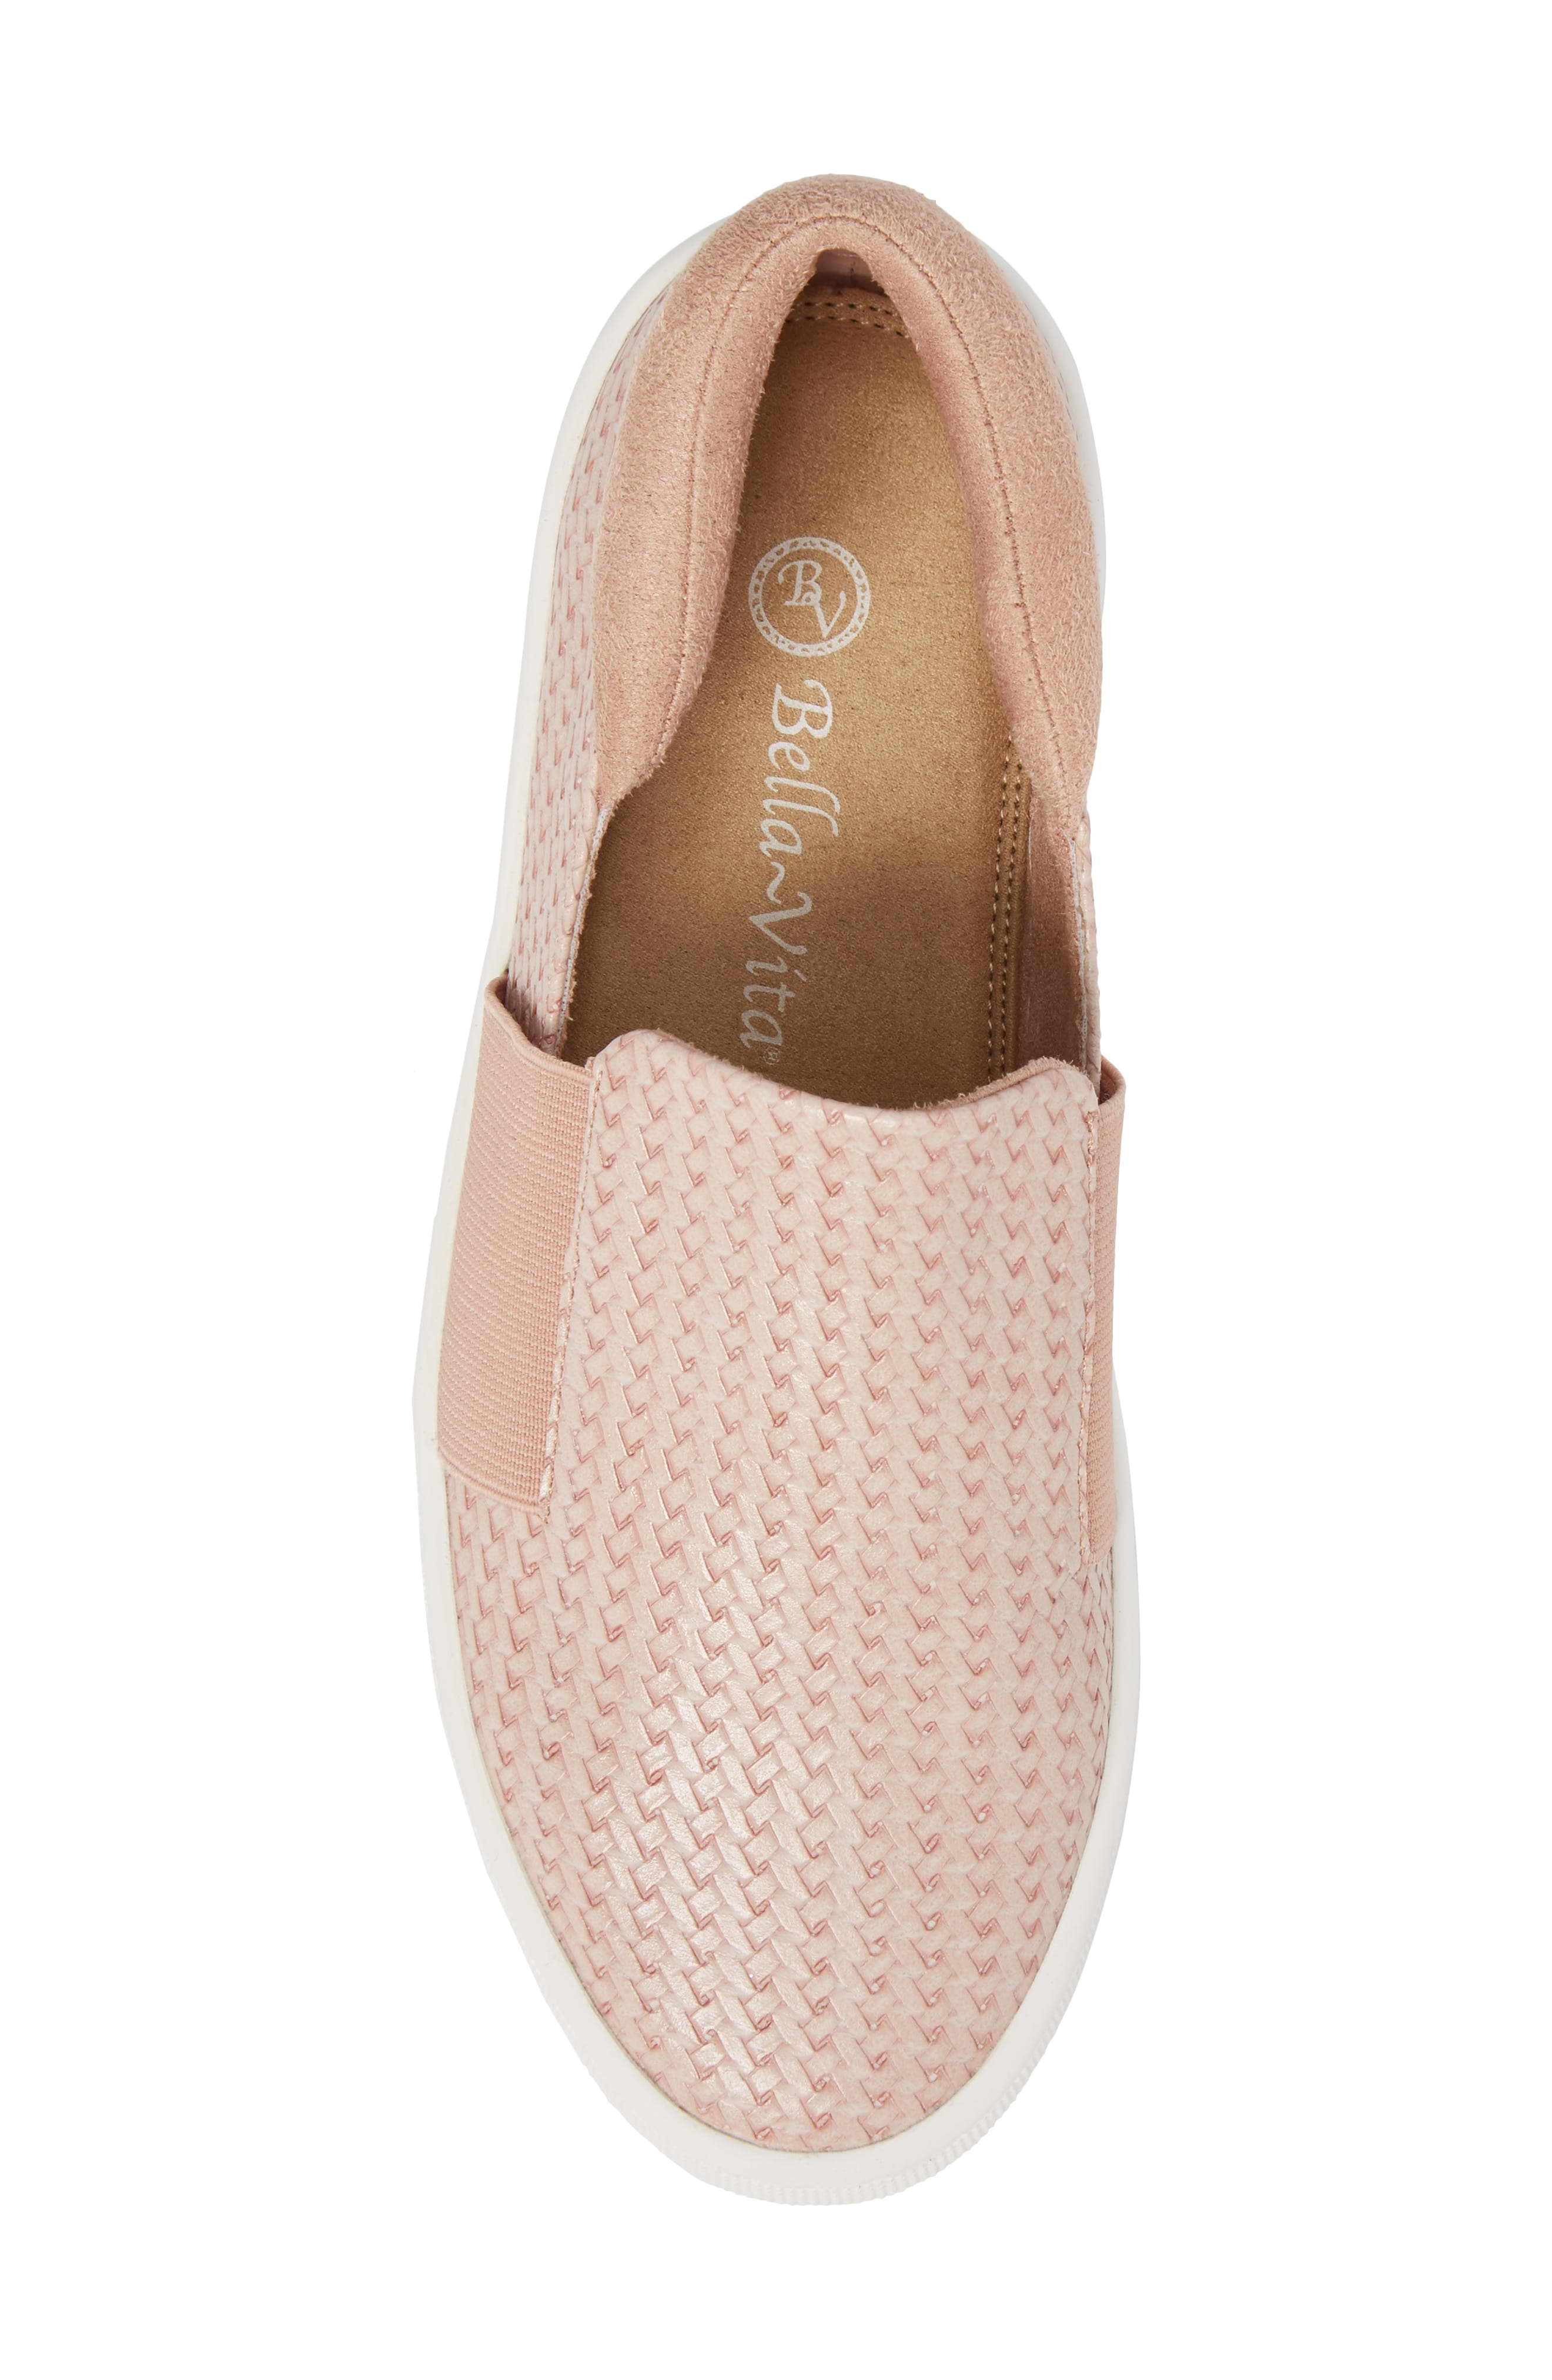 Ramp II Slip-On Sneaker,                             Alternate thumbnail 5, color,                             BLUSH FABRIC